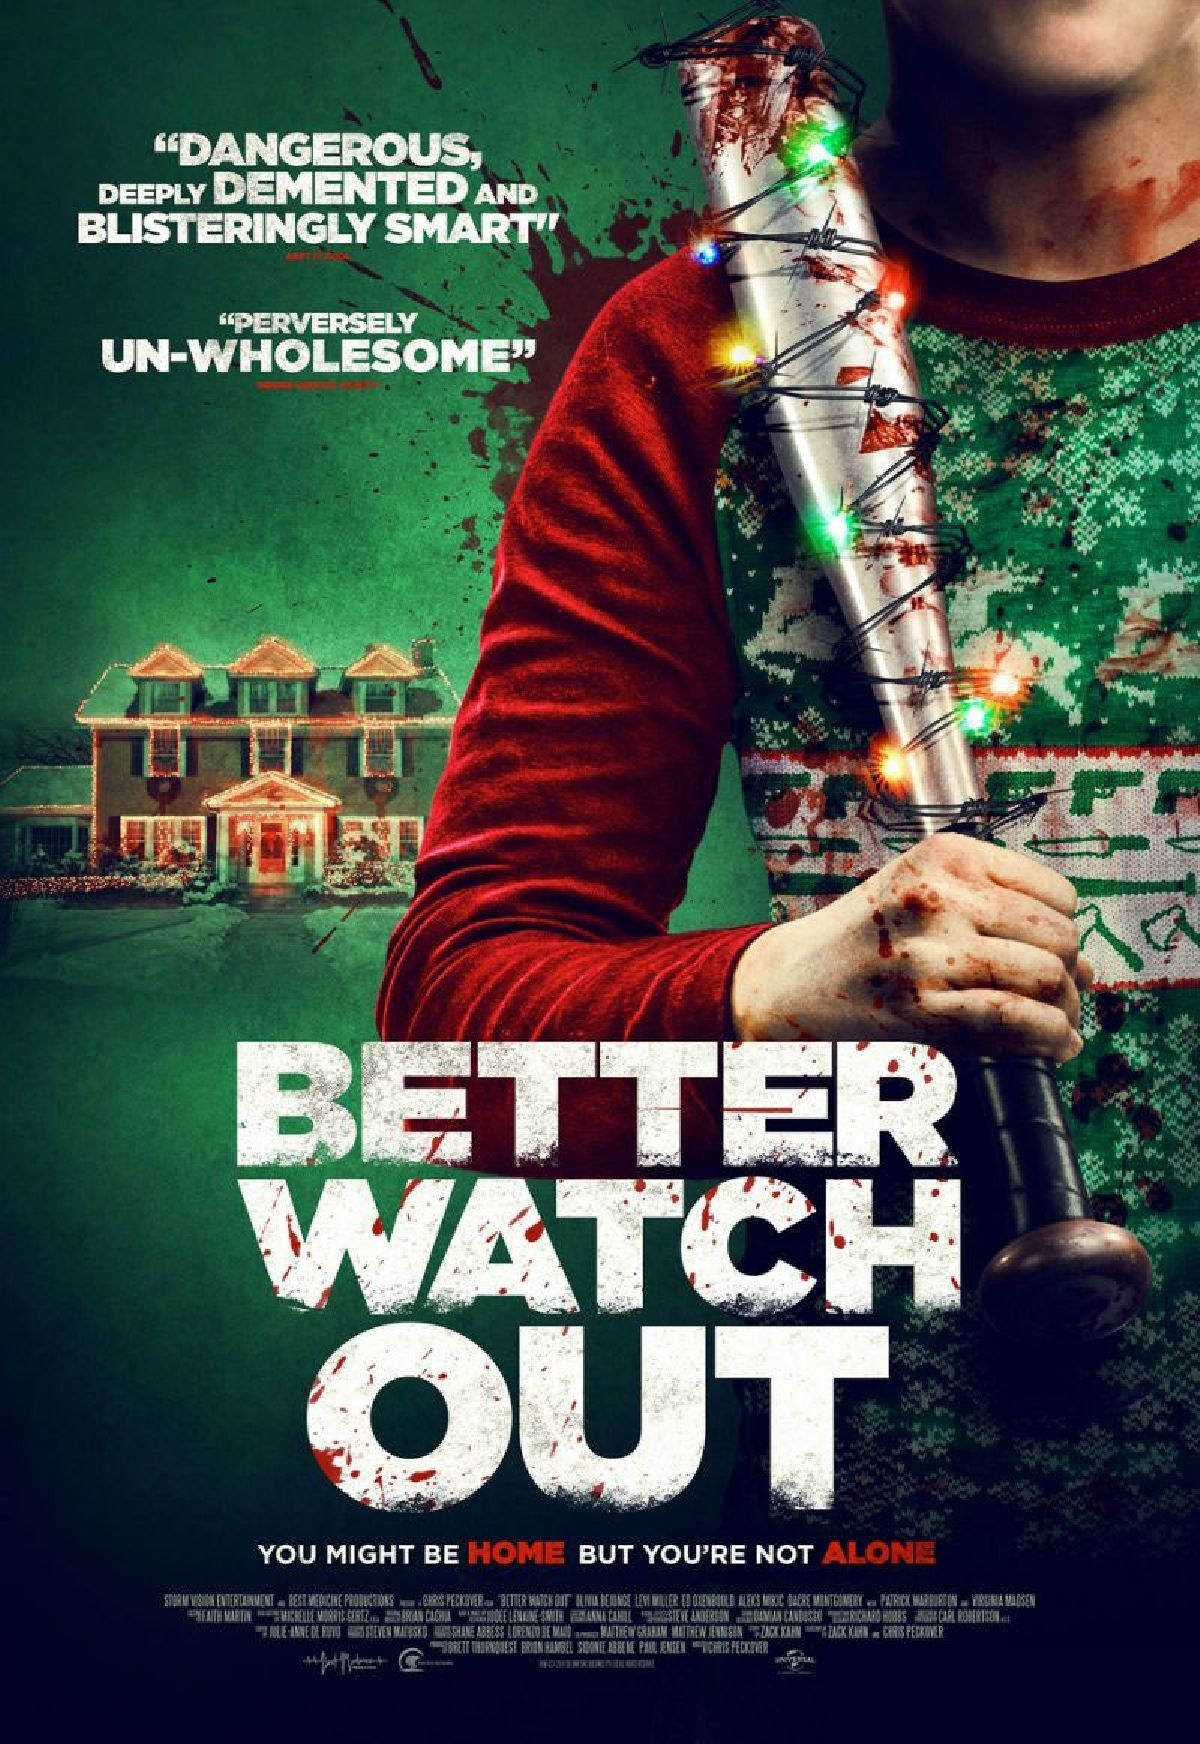 'Better Watch Out' movie poster